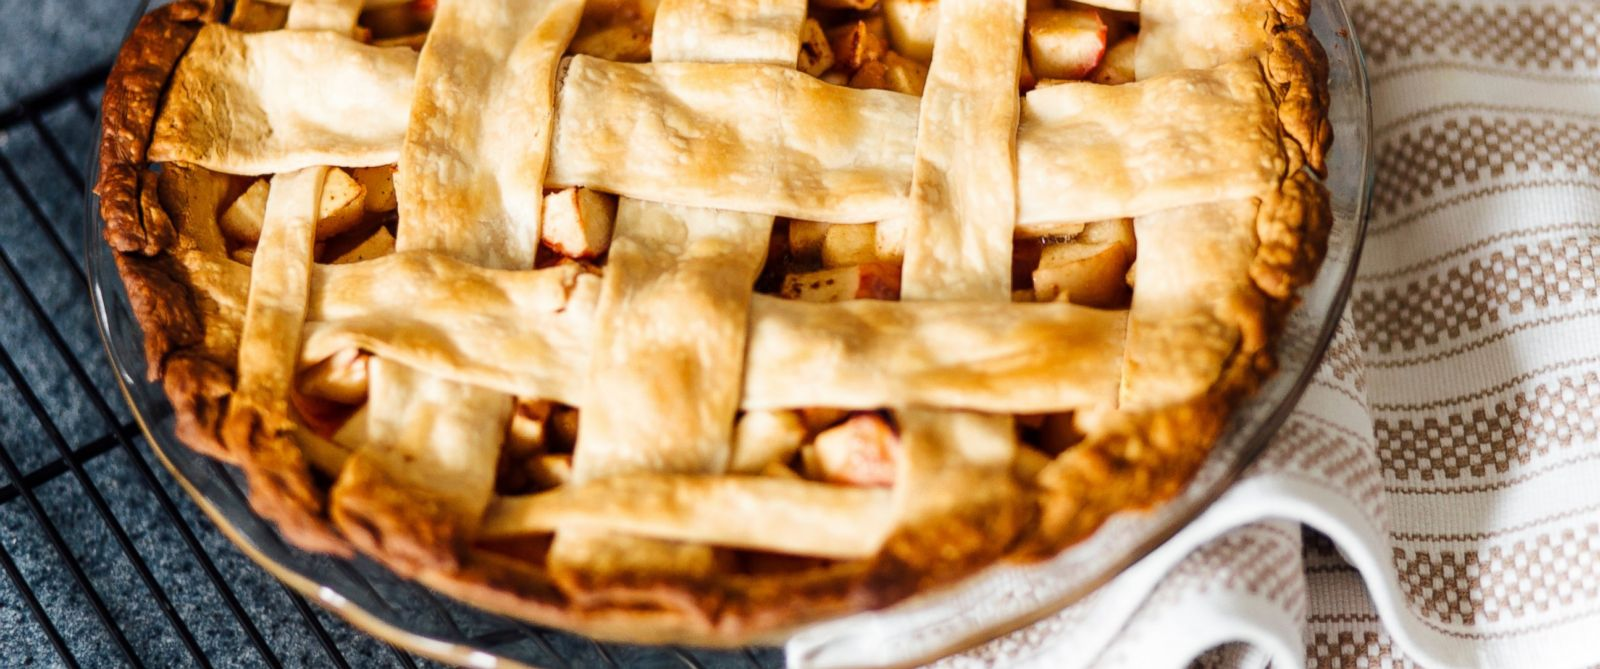 PHOTO: Apple pie with latticed pastry on kitchen counter